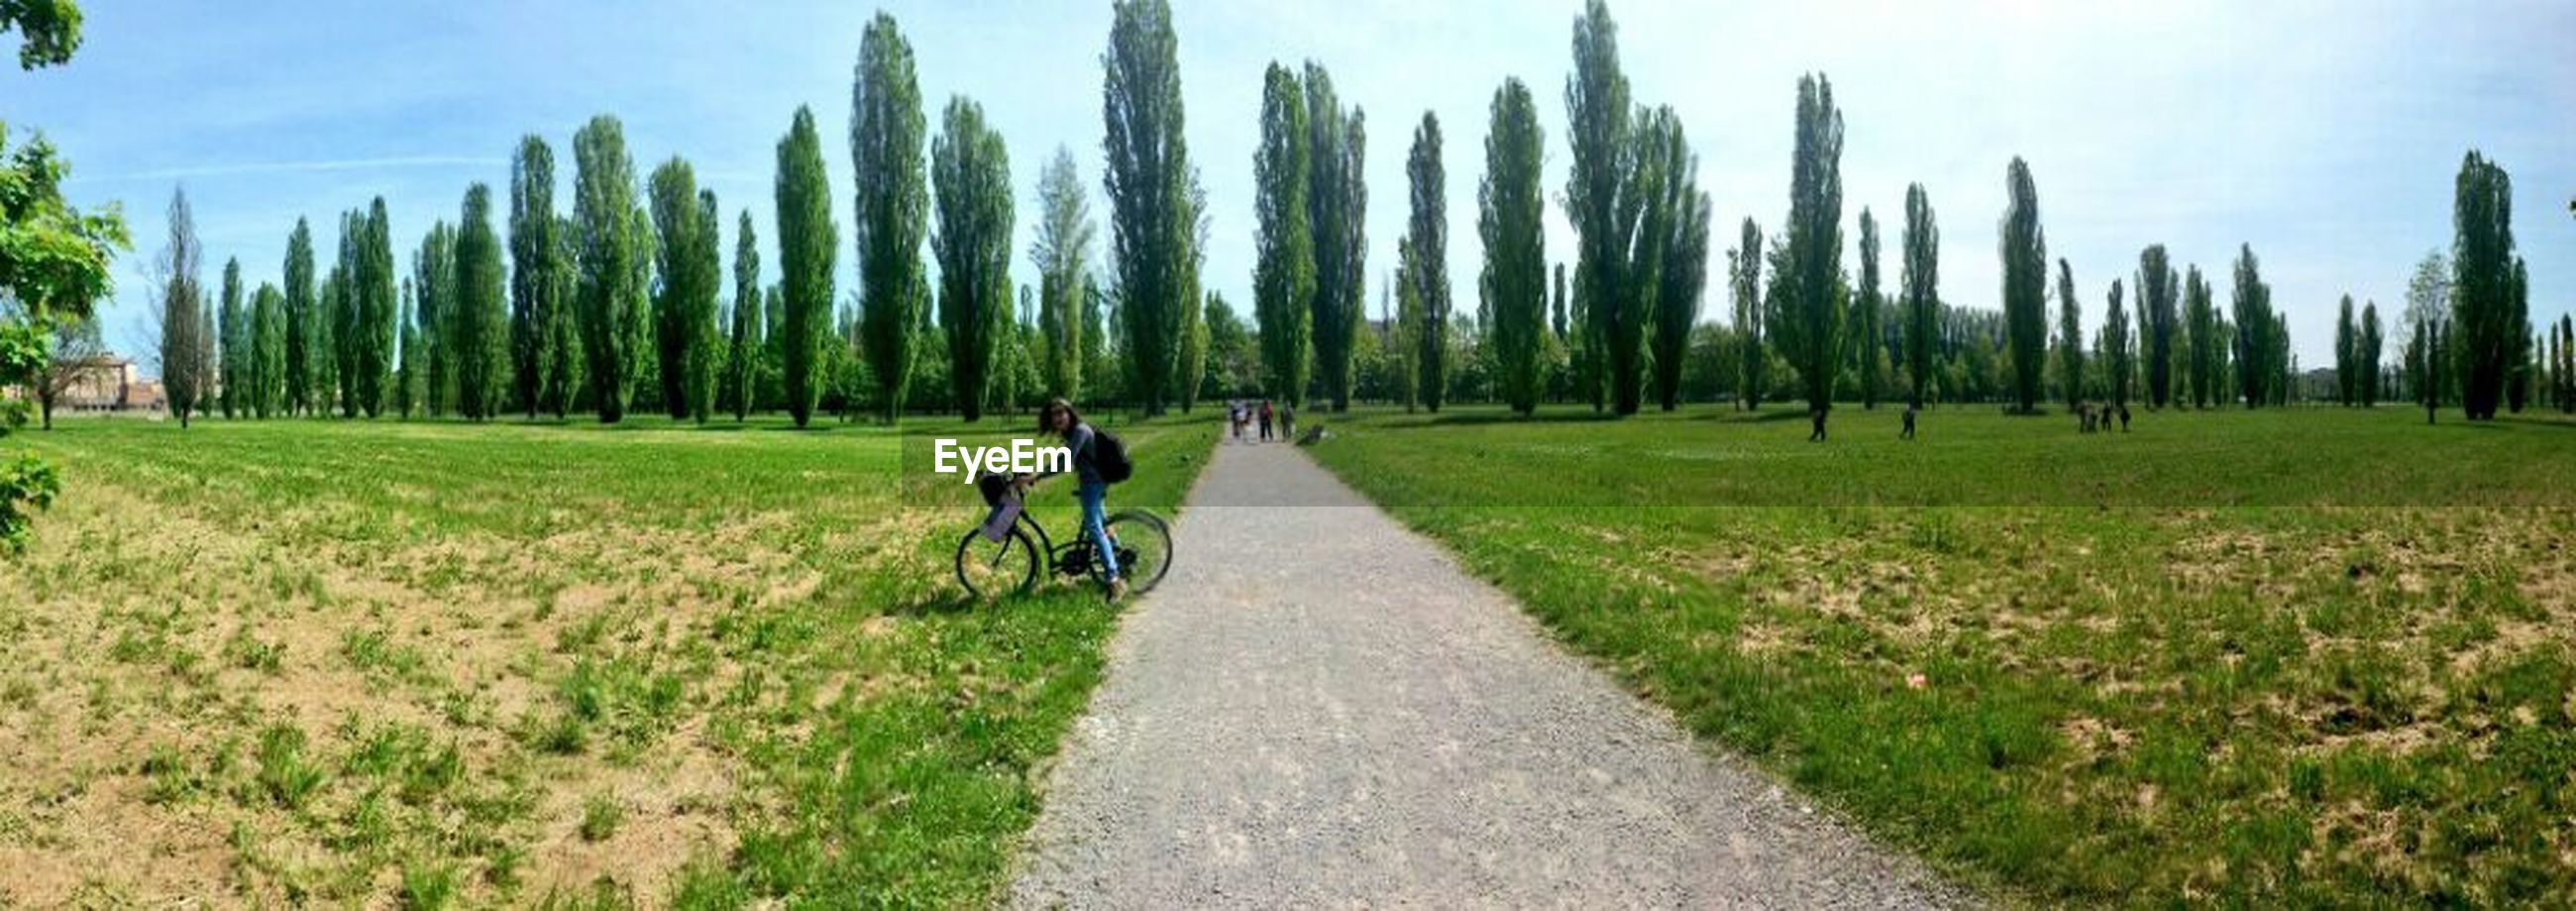 grass, field, the way forward, green color, agriculture, diminishing perspective, growth, rural scene, sky, landscape, vanishing point, transportation, in a row, bicycle, walking, grassy, tree, nature